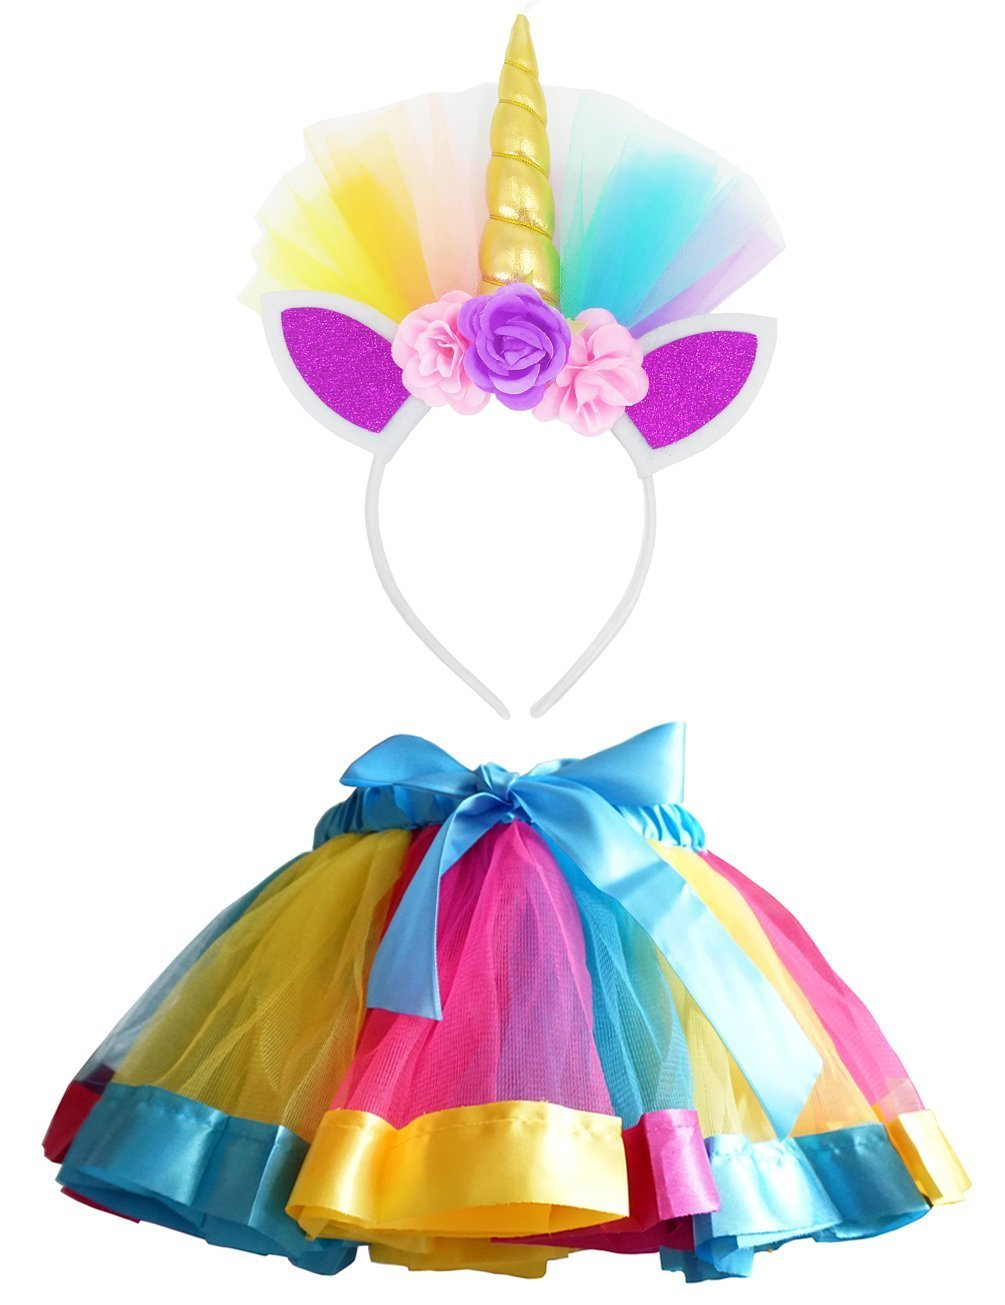 Loveyal Little Girls Layered Rainbow Tutu Skirts Unicorn Horn Headband (Gold, M,2-4 Years)